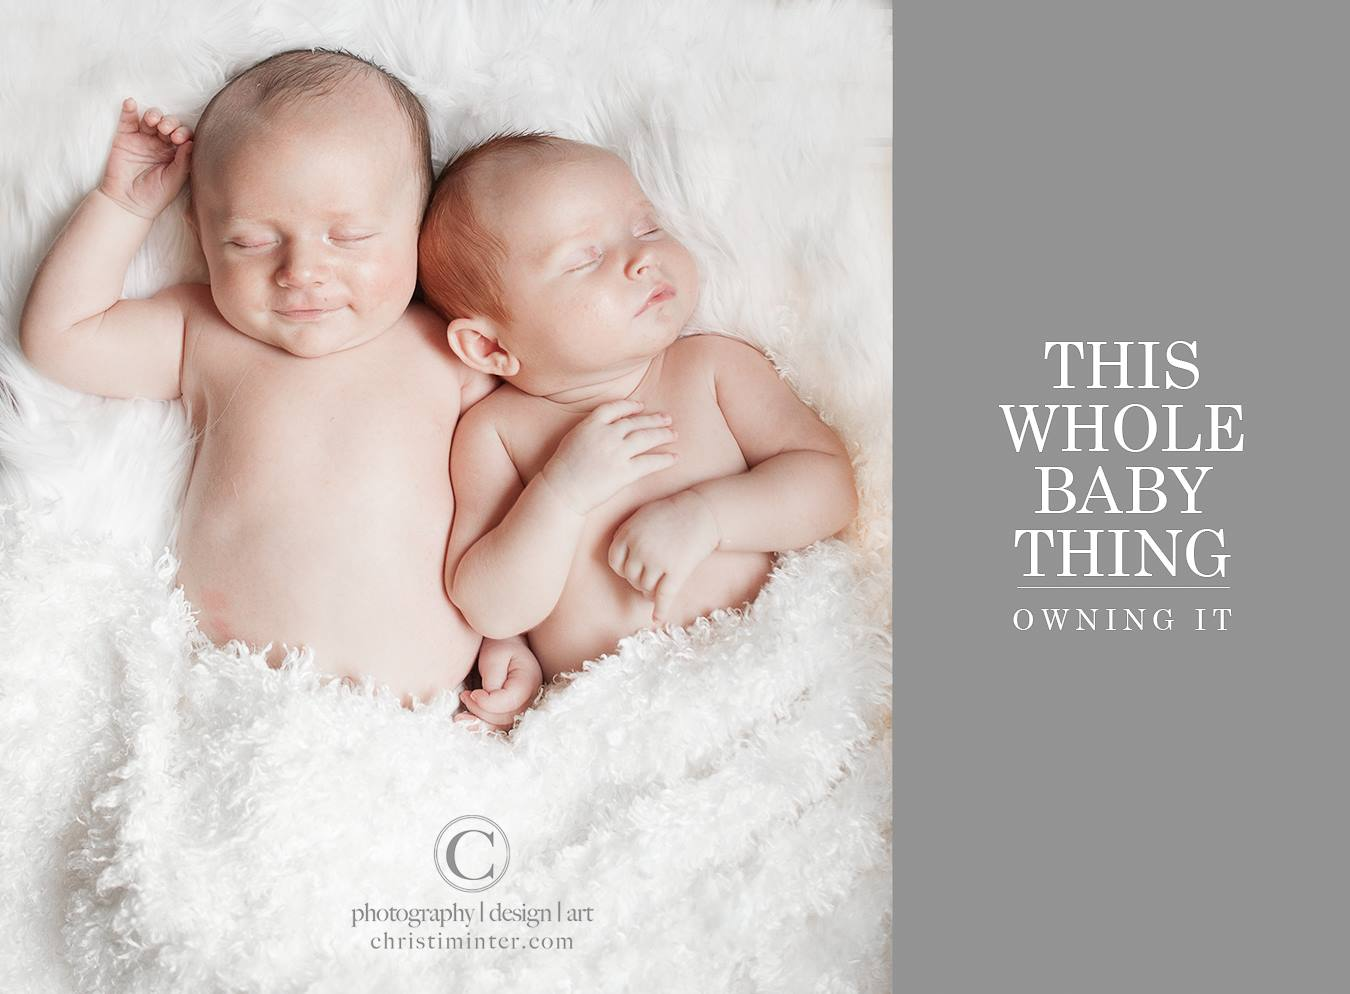 ©christiminter.com_babyphotography_twins _lifestyle